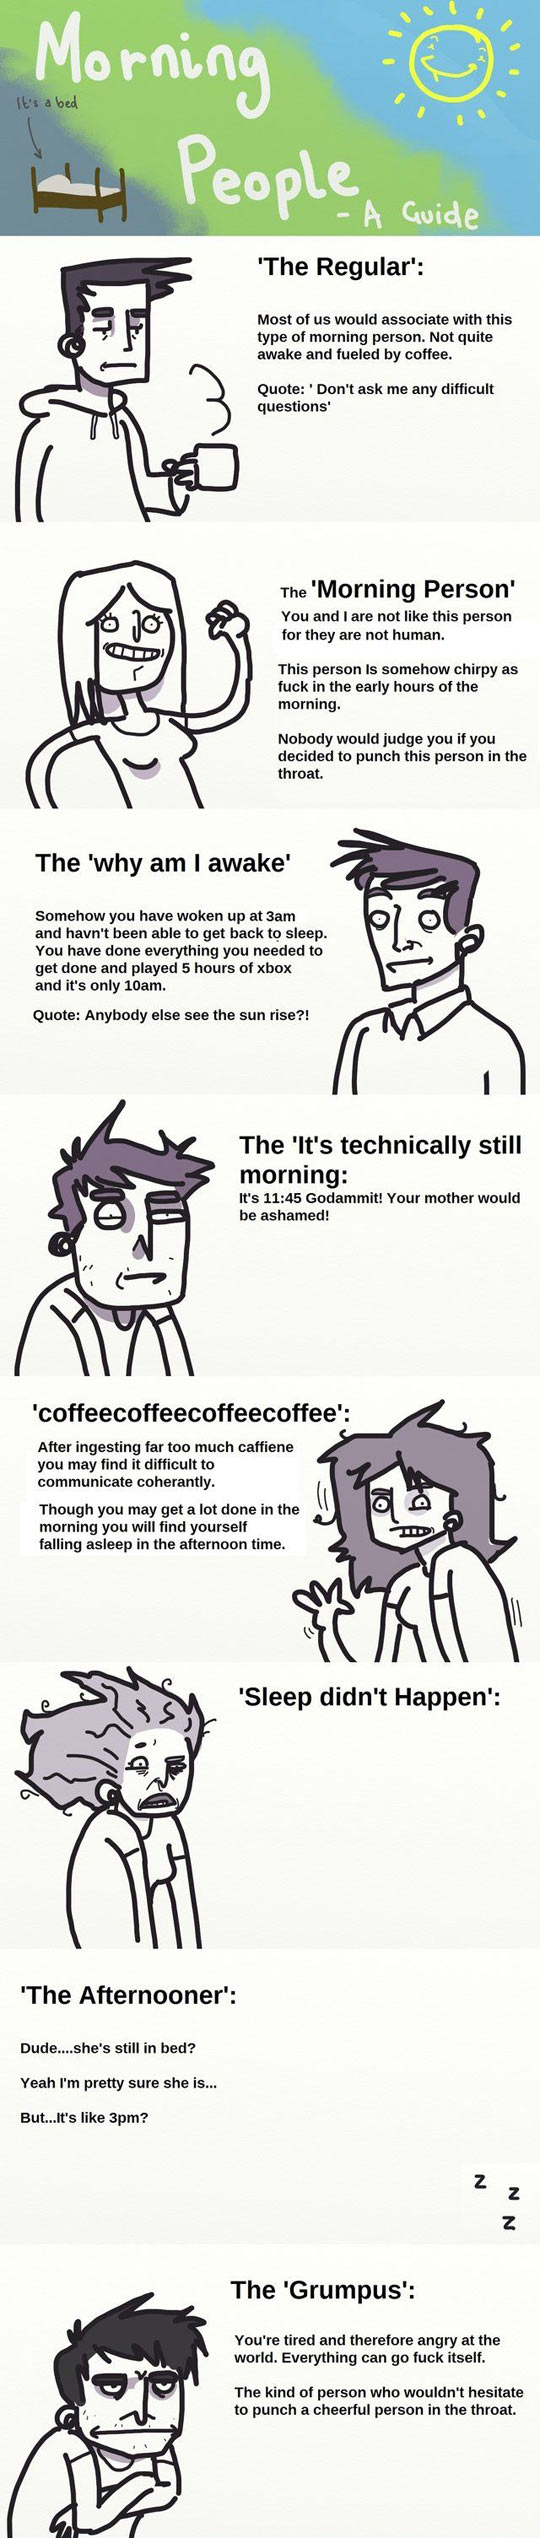 funny-morning-people-guided-picture